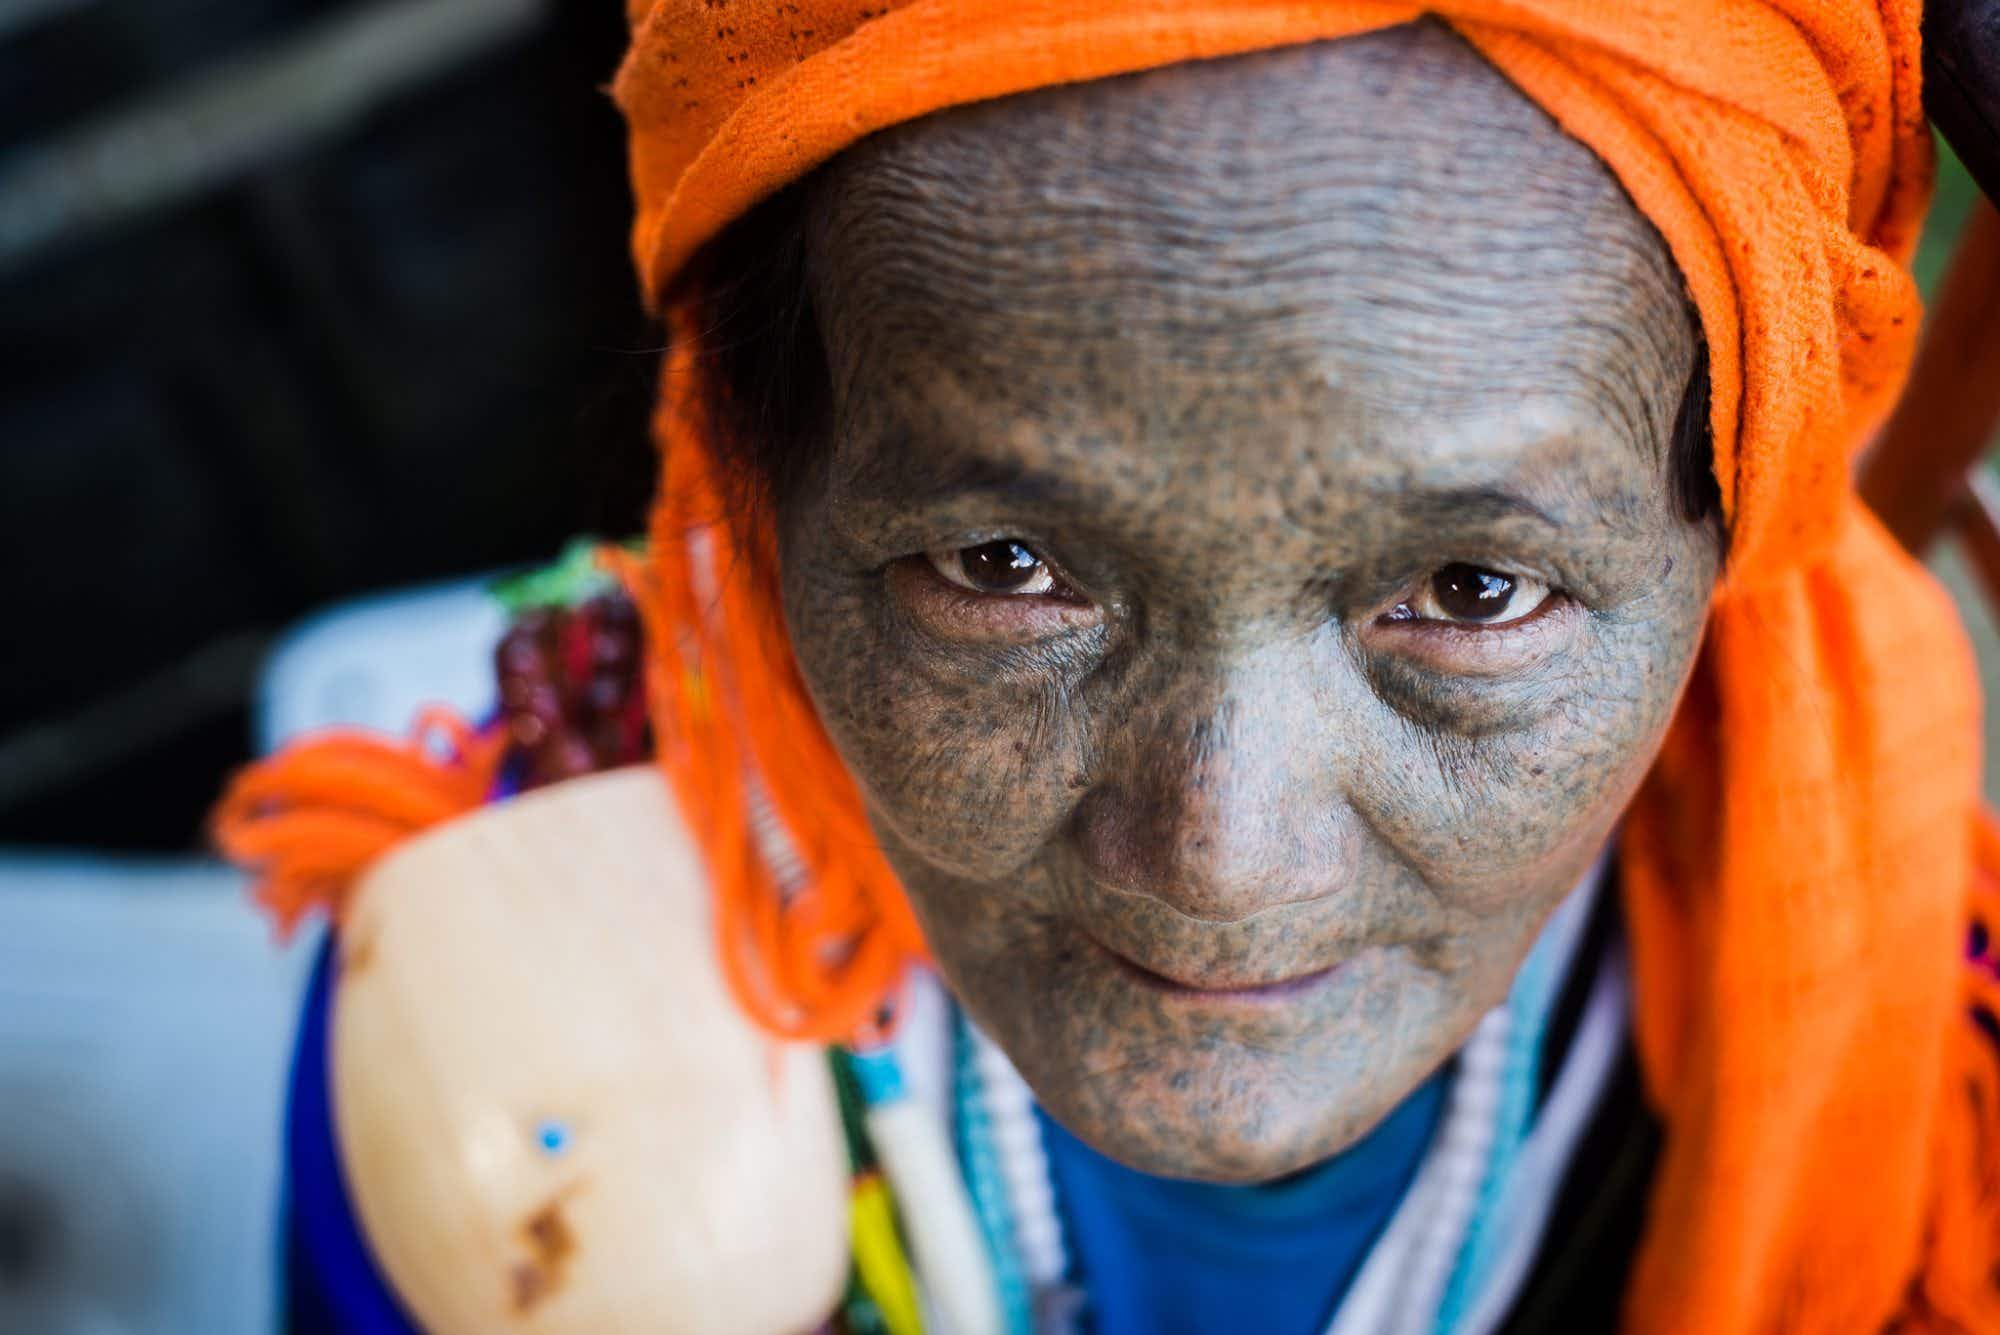 The Palaung and Shan women of Myanmar captured in stunning portraits